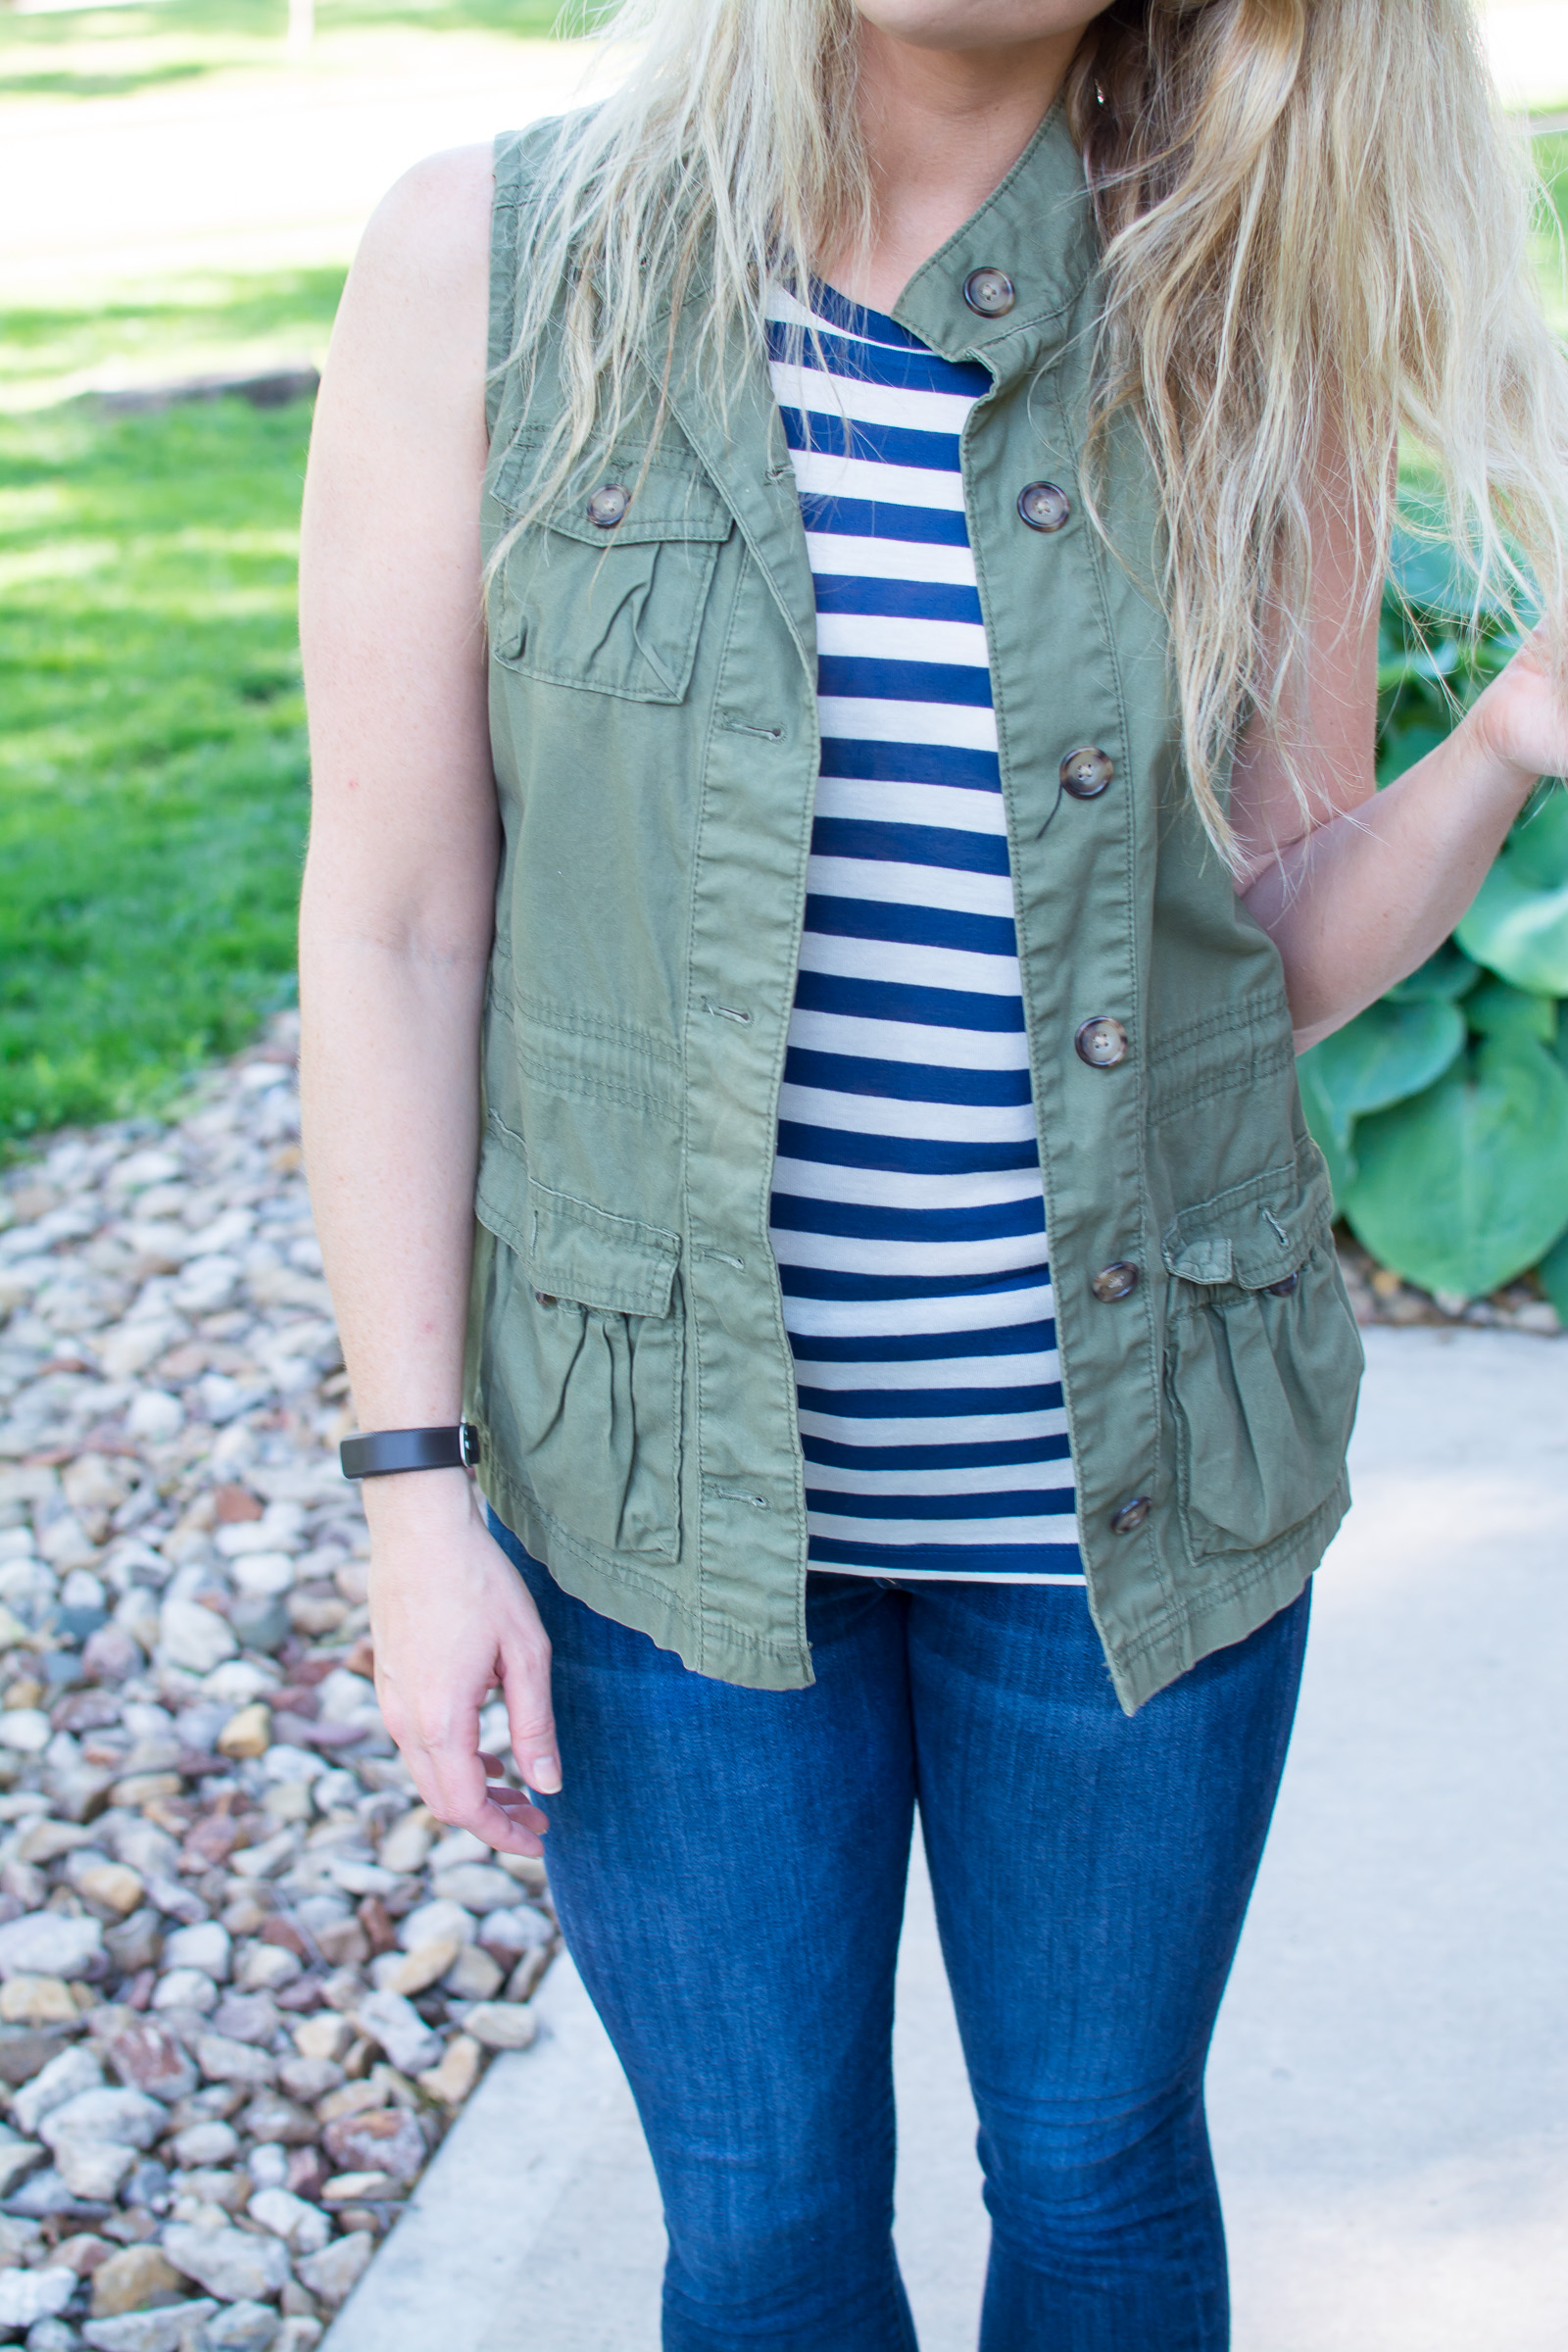 Utility Vest + Easy Stripes. | Ashley from Le Stylo Rouge